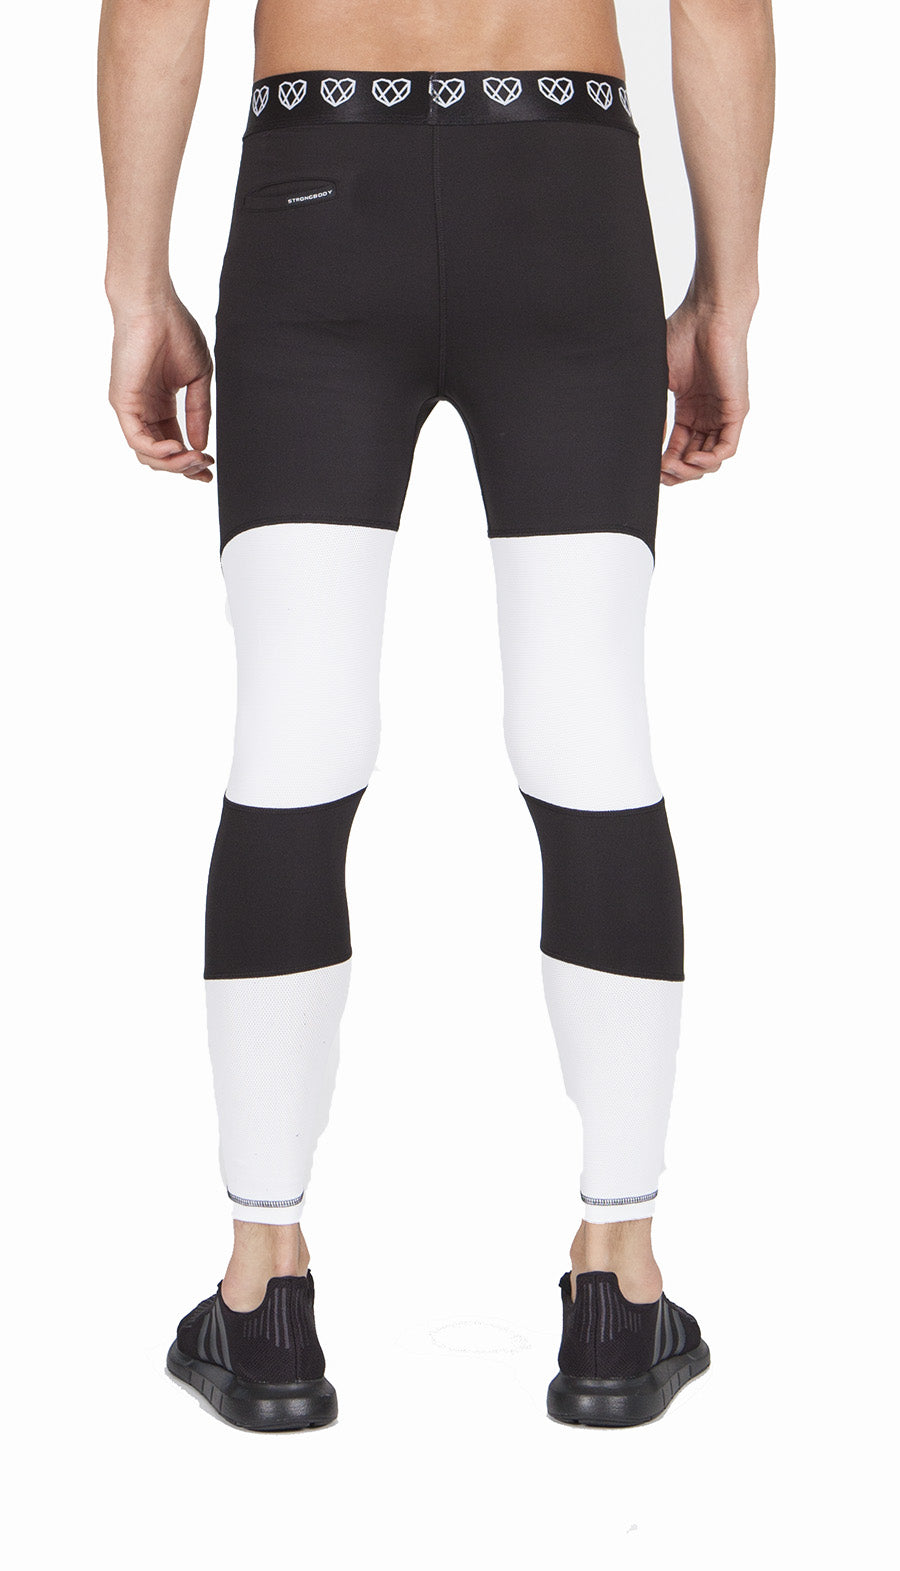 Men's Odor Free Compression Leggings with White Contrast